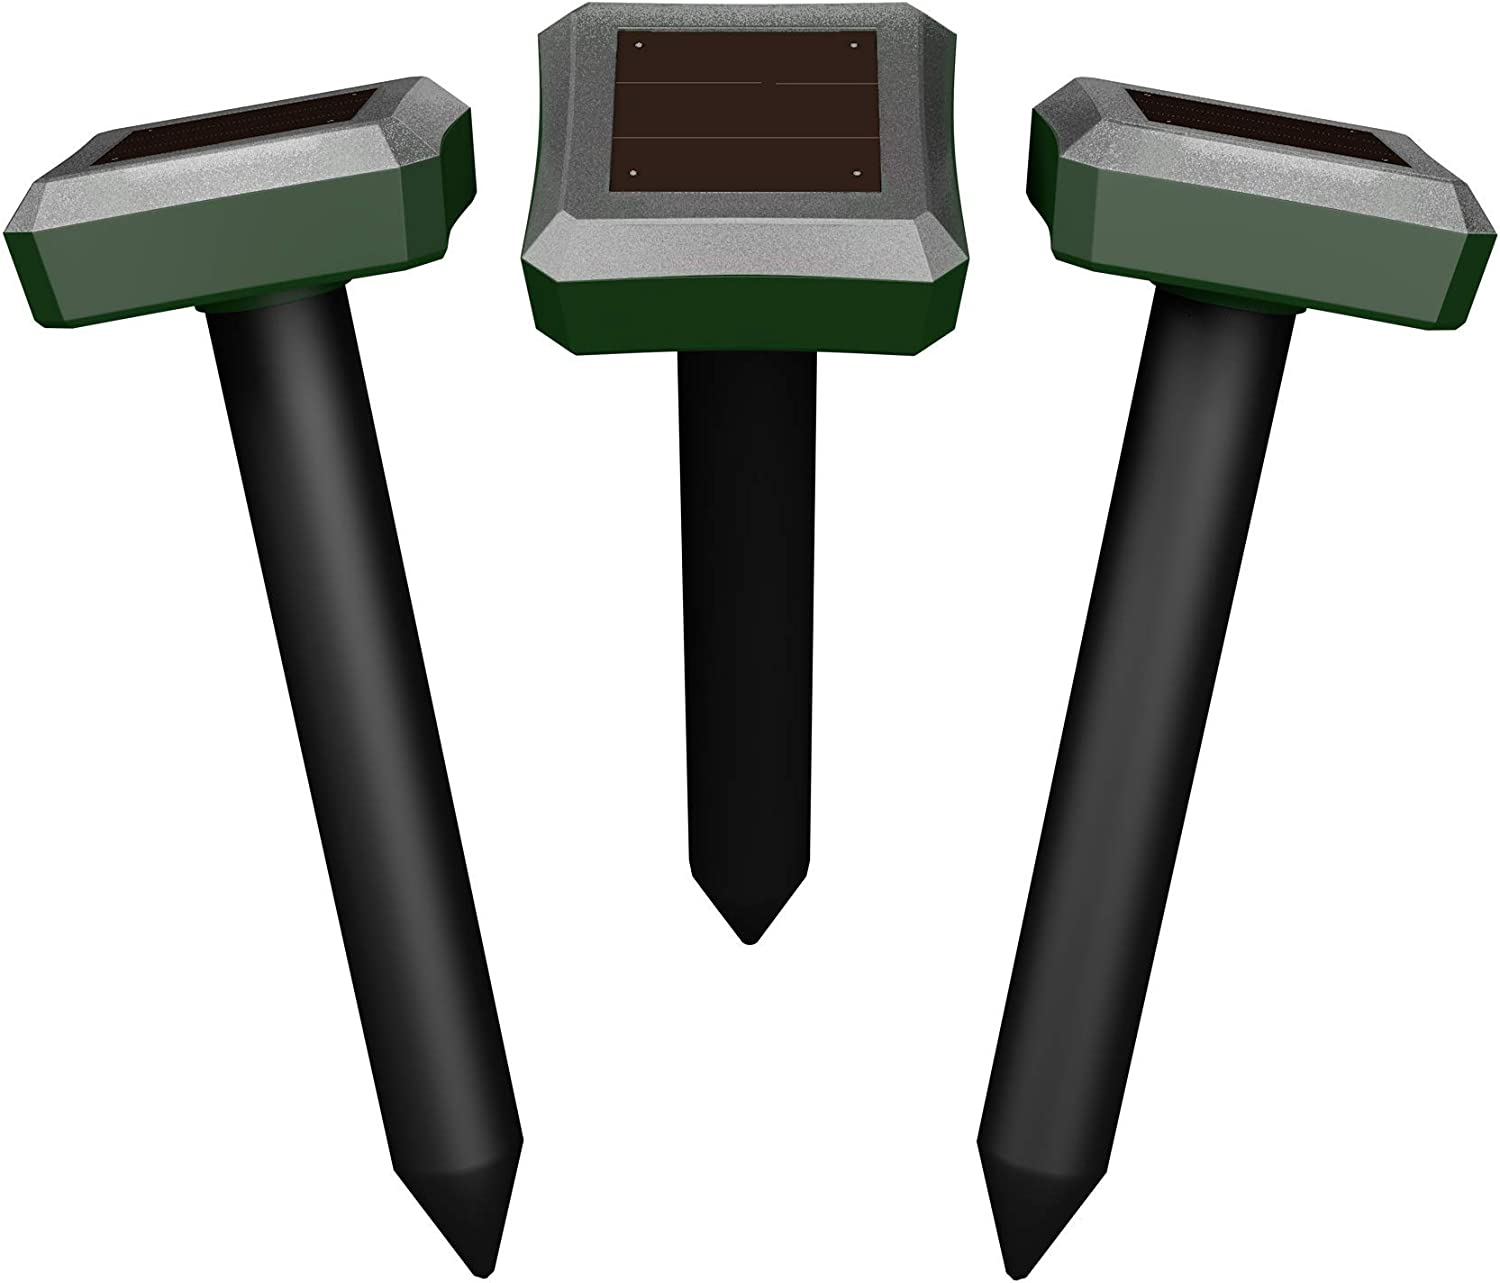 ONTROWA Solar Mole Repellent Ultrasonic 3 Pack Outdoor Powered Sonic Deterrent - Mole Stopper Scare Vole for Lawn Garden & Yard Home - Groundhog Repeller Snake Spikes Chaser Pest Control (Square)